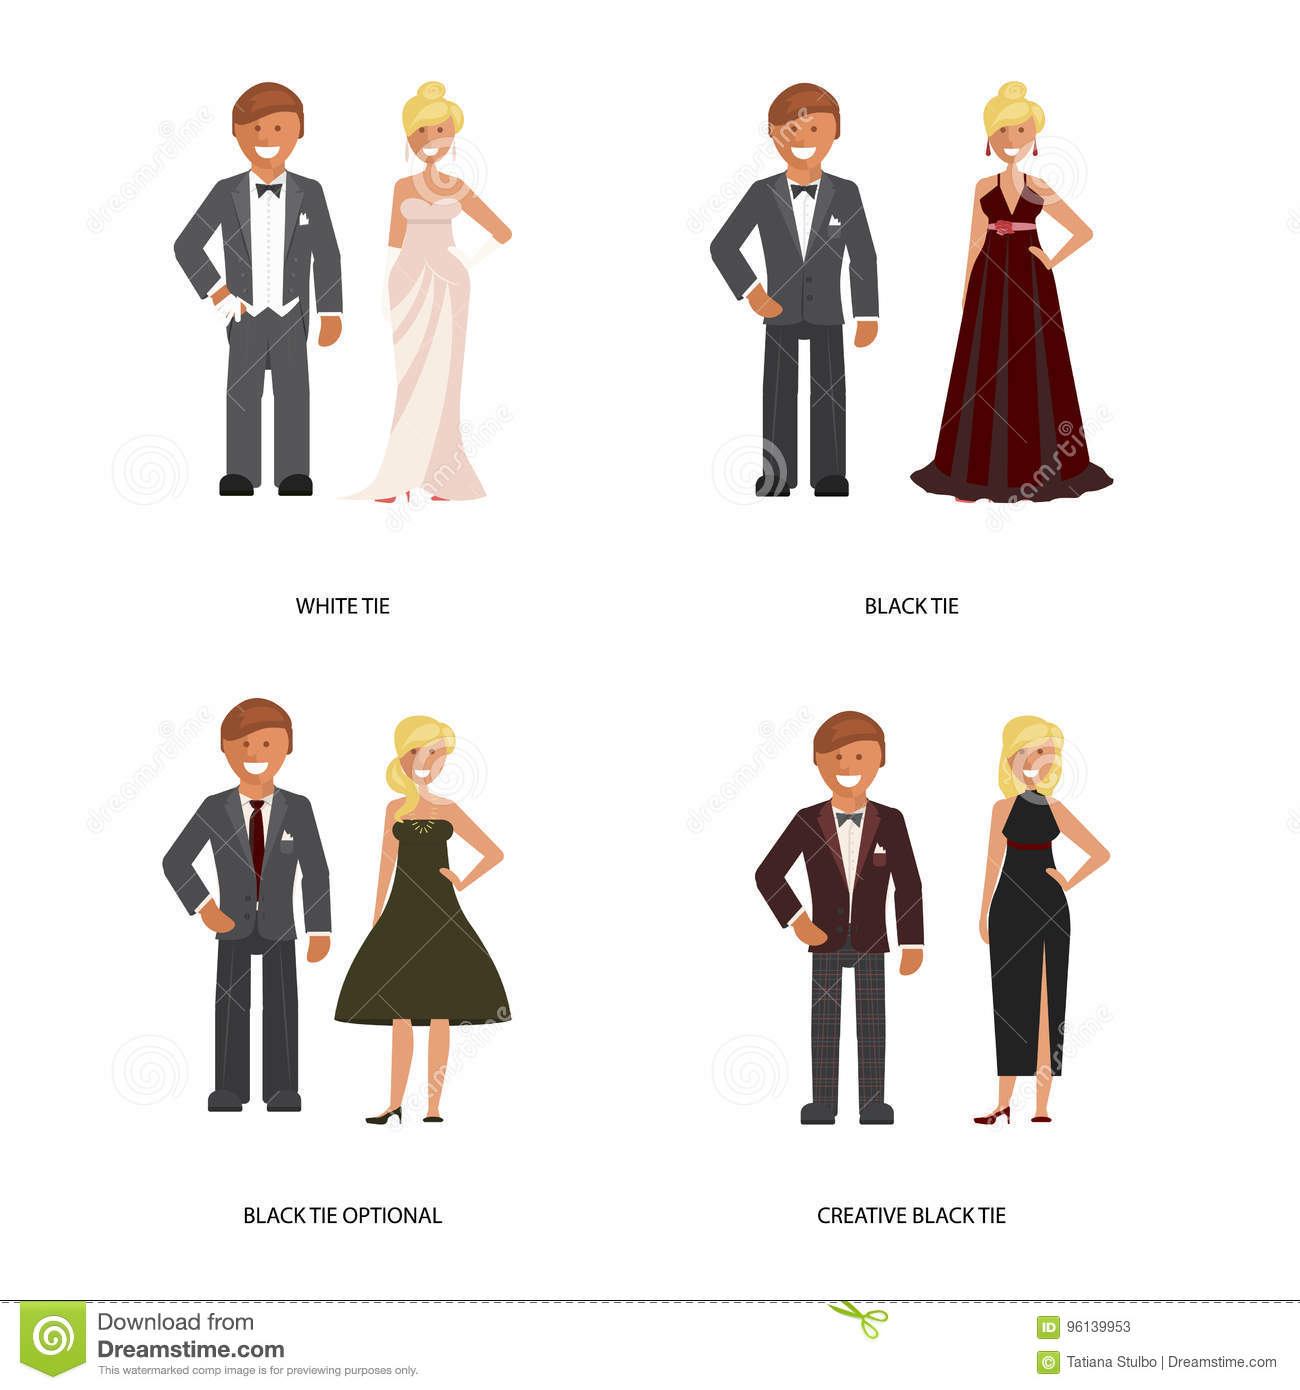 Black and white tie dress code. Man and woman in smart casual style suits  on white background. Vector illustration of people in formal clothes. 1c3091c59